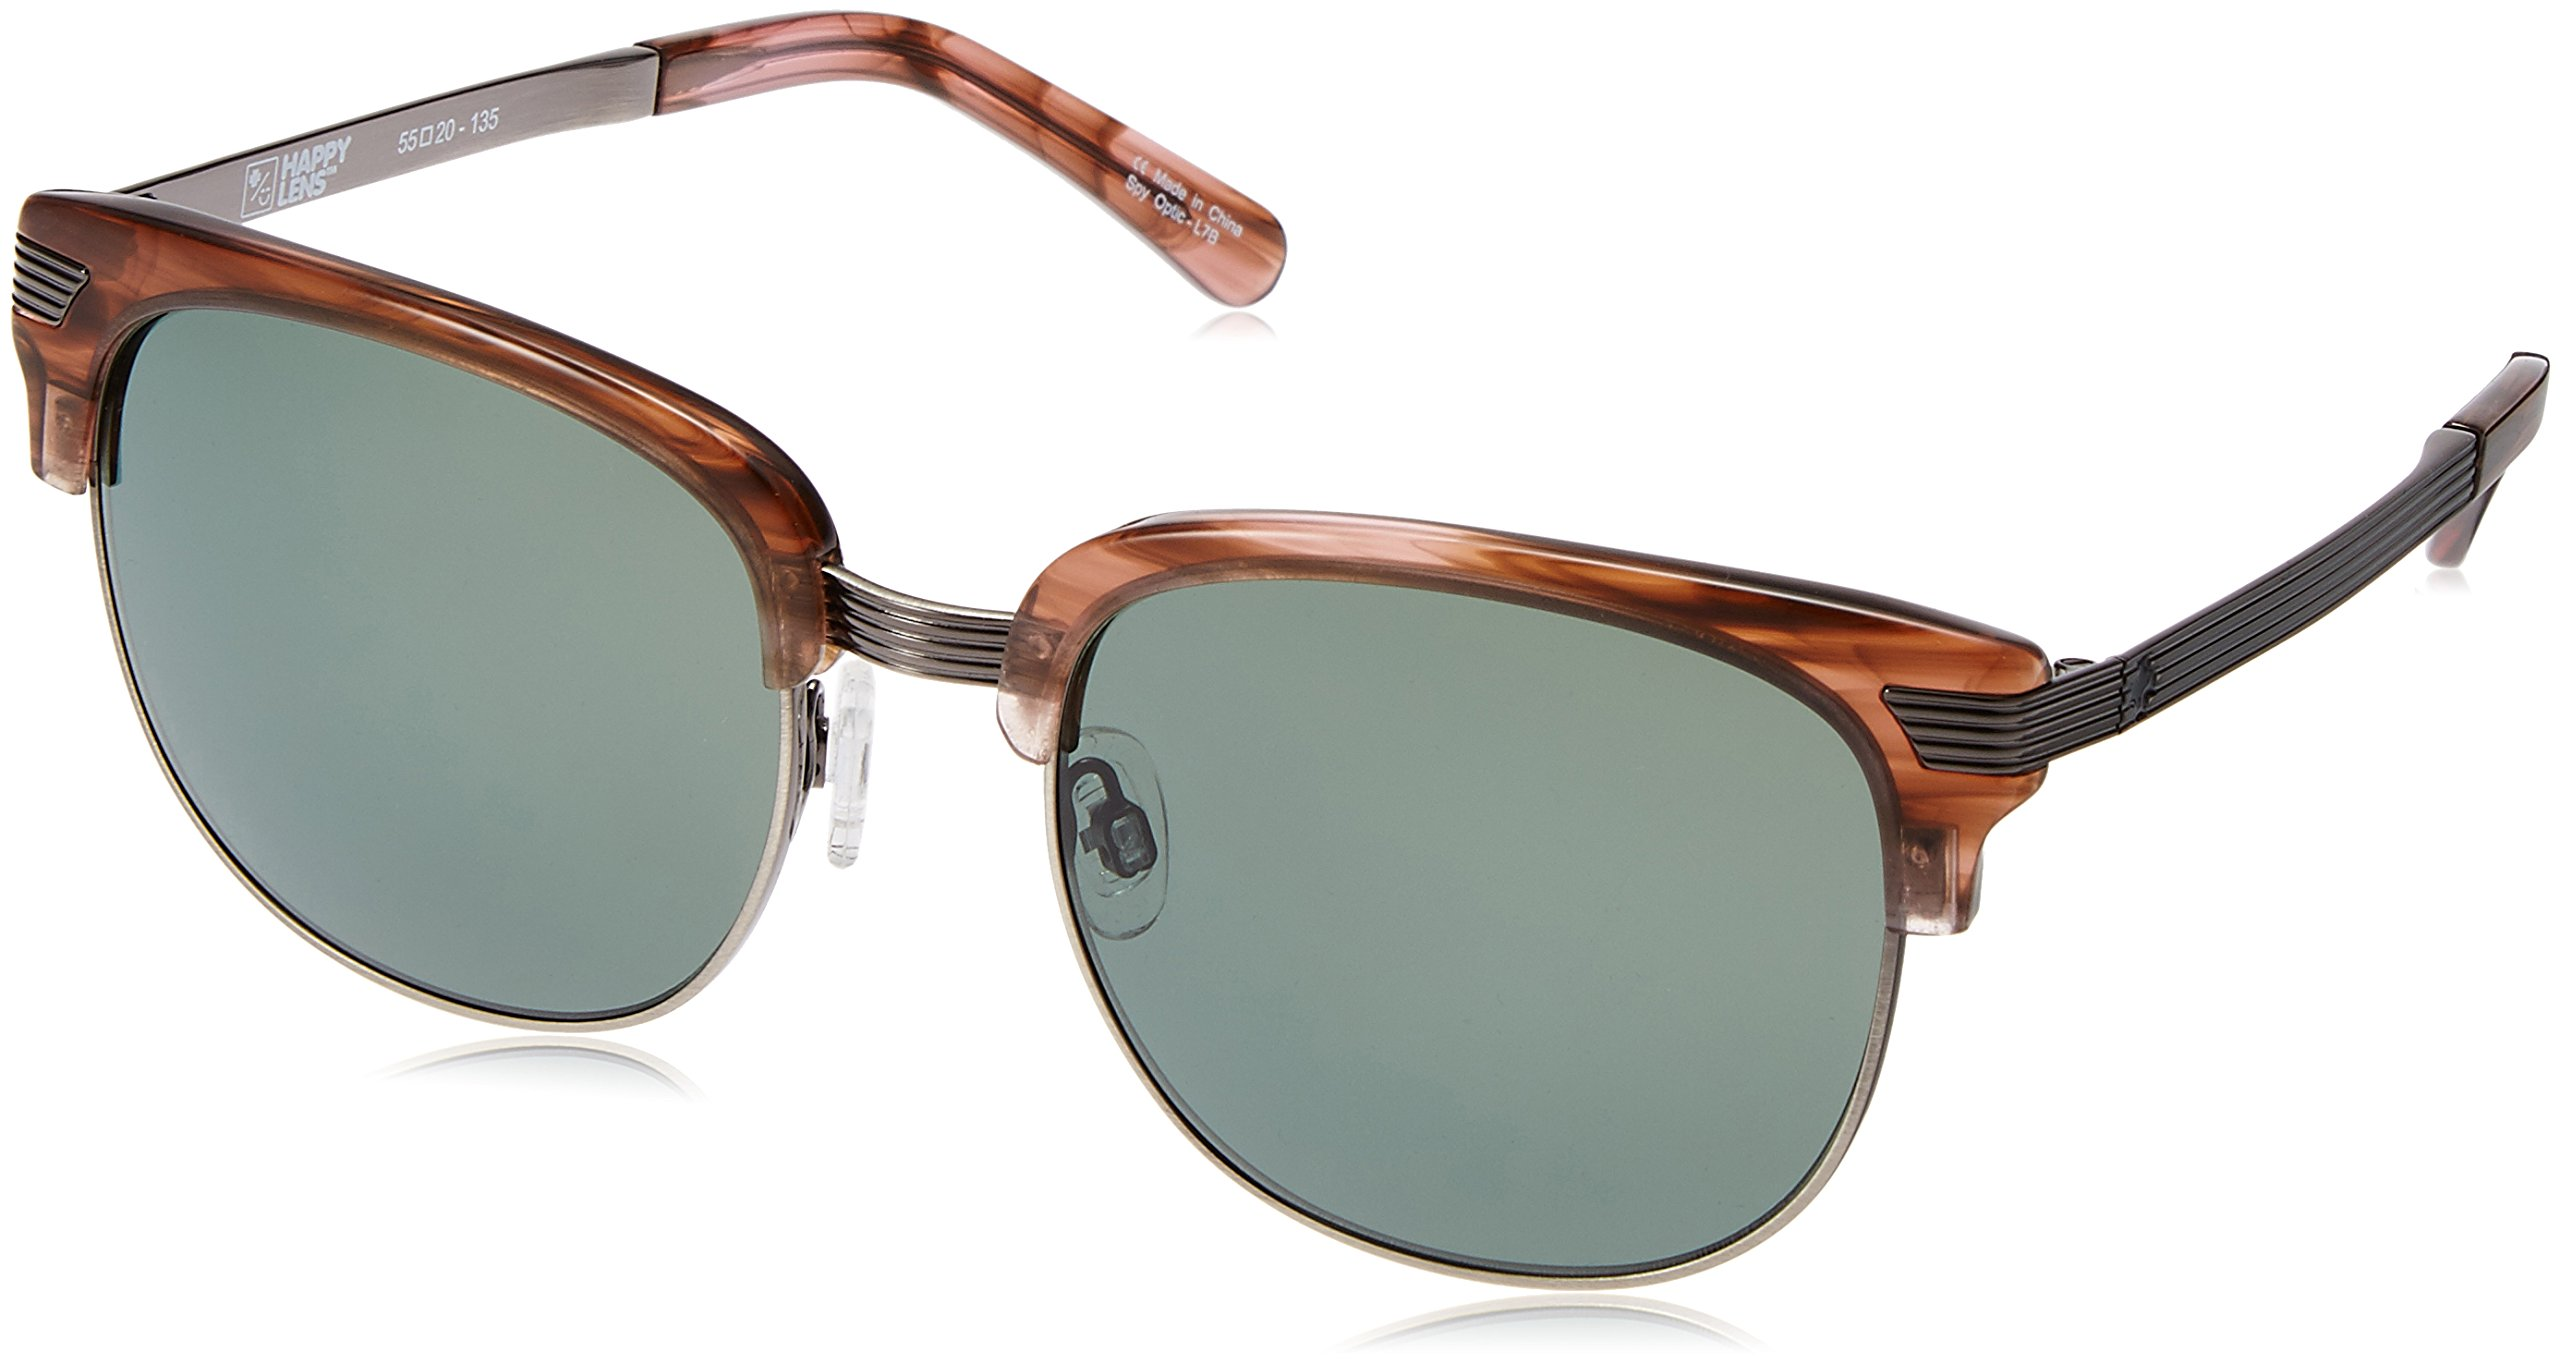 Spy Bleecker Sunglasses - Happy Lens Pink Smoke - Happy Gray Green, One Size by Spy